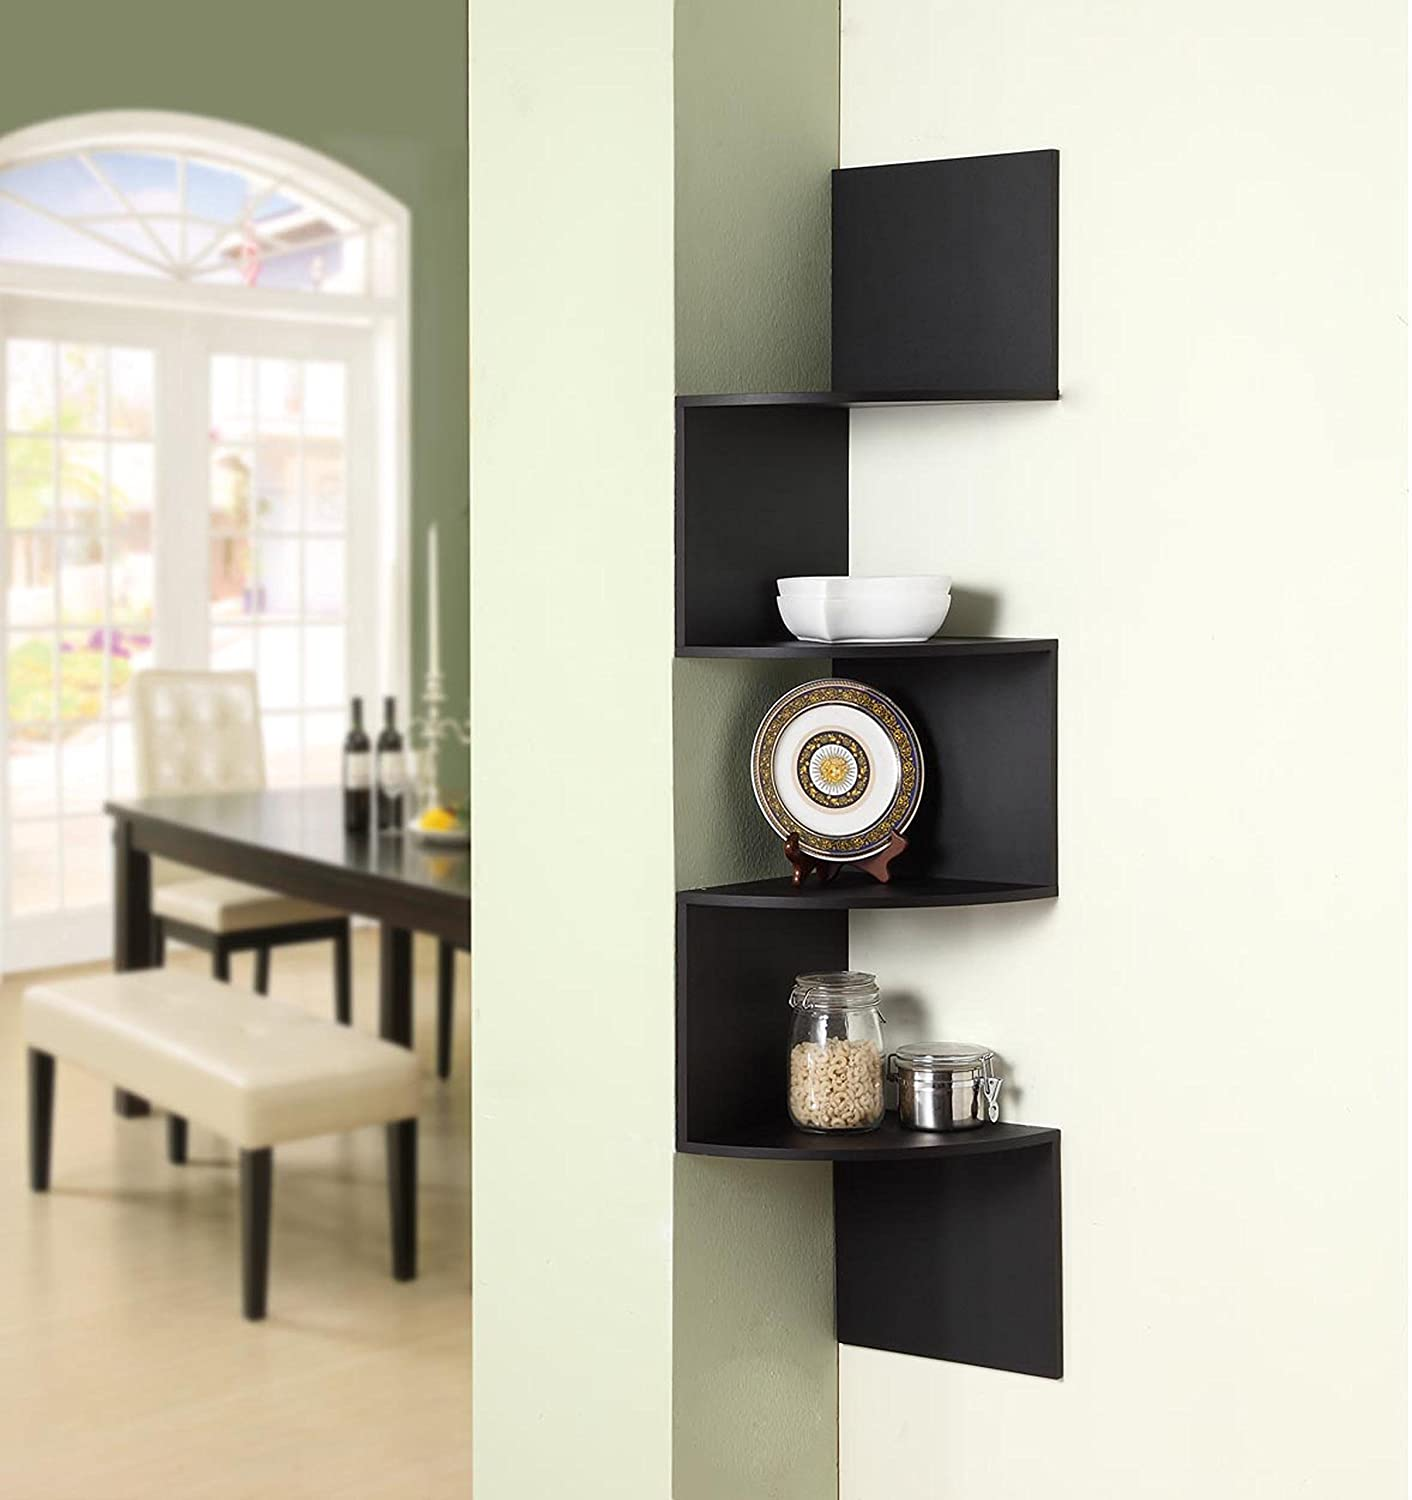 amazoncom d concepts hanging corner storage black kitchen  - amazoncom d concepts hanging corner storage black kitchen  dining